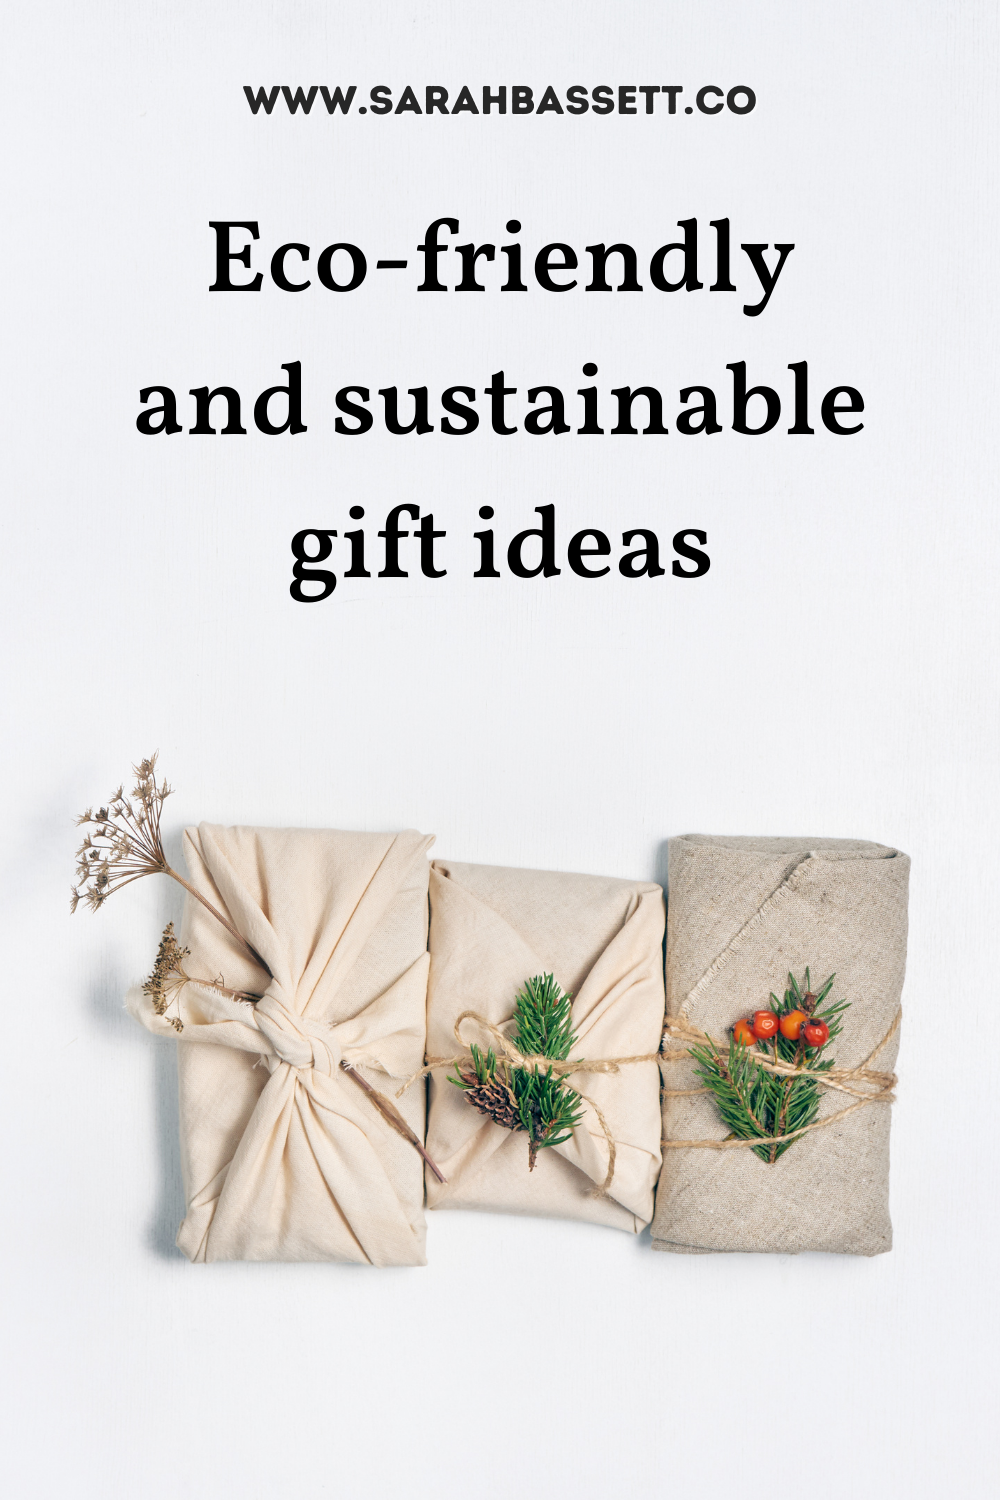 Sustainable gifts guide for zero waste, eco-friendly, plastic-free and environmentally-friendly gifts